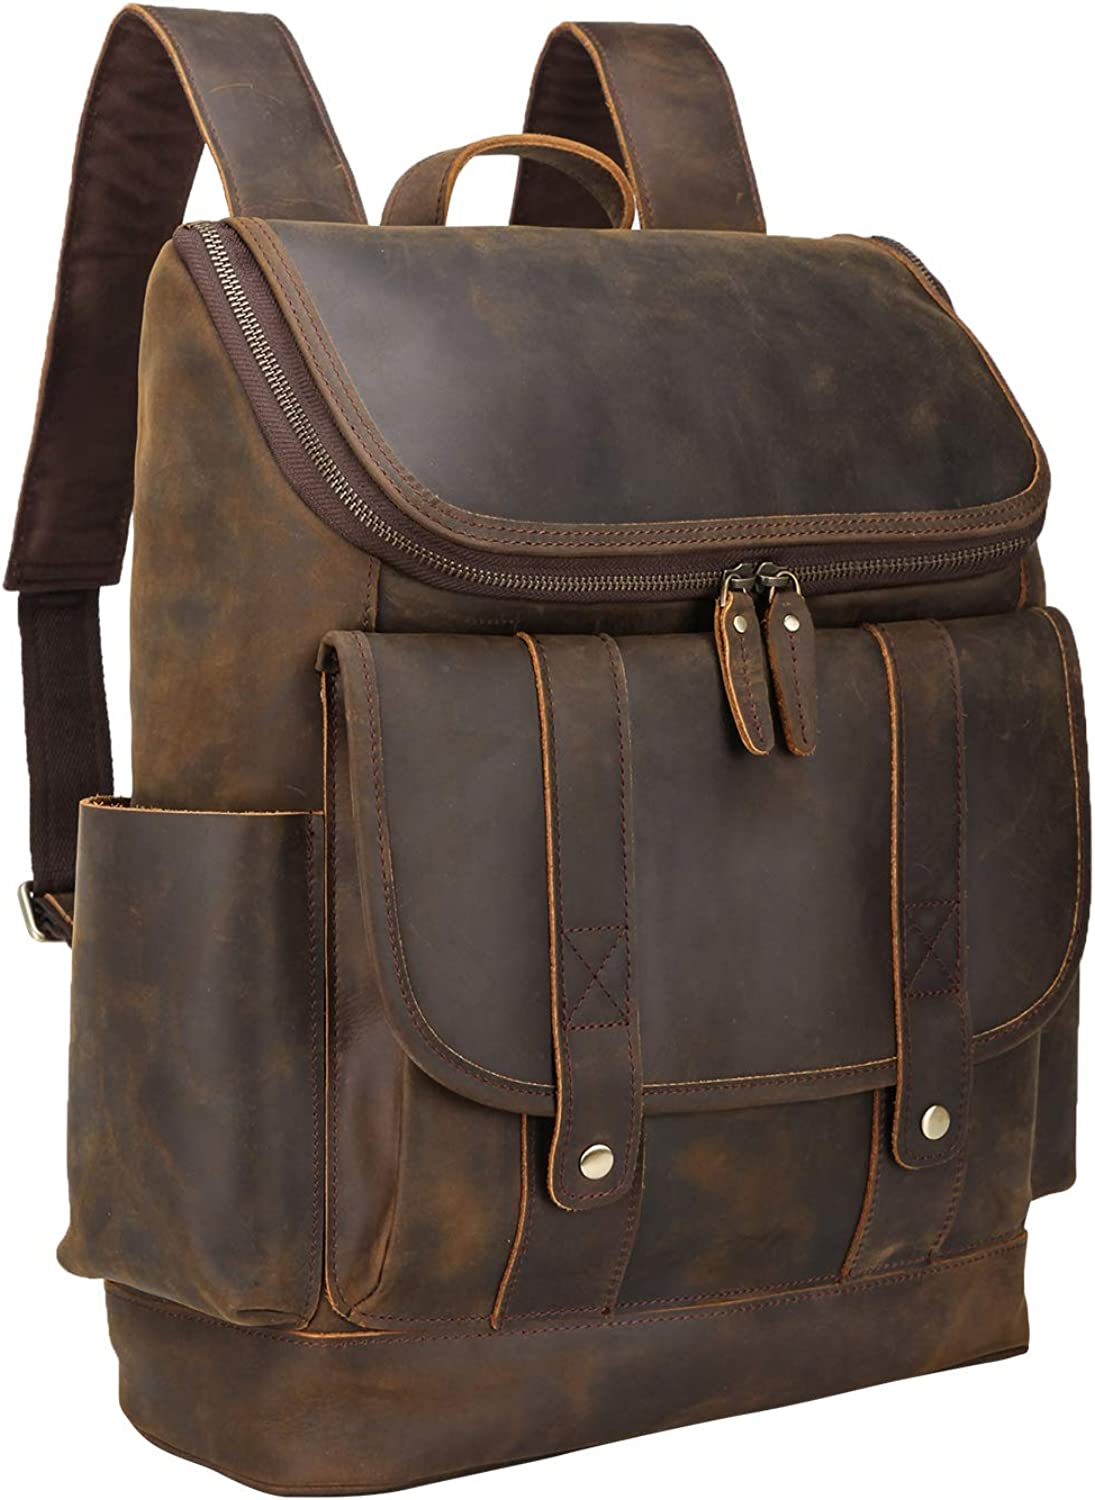 Texbo Vintage Full Grain Cowhide Leather 15.6 Inch Laptop Backpack Shoulder Travel School Bag with YKK Metal Zippers